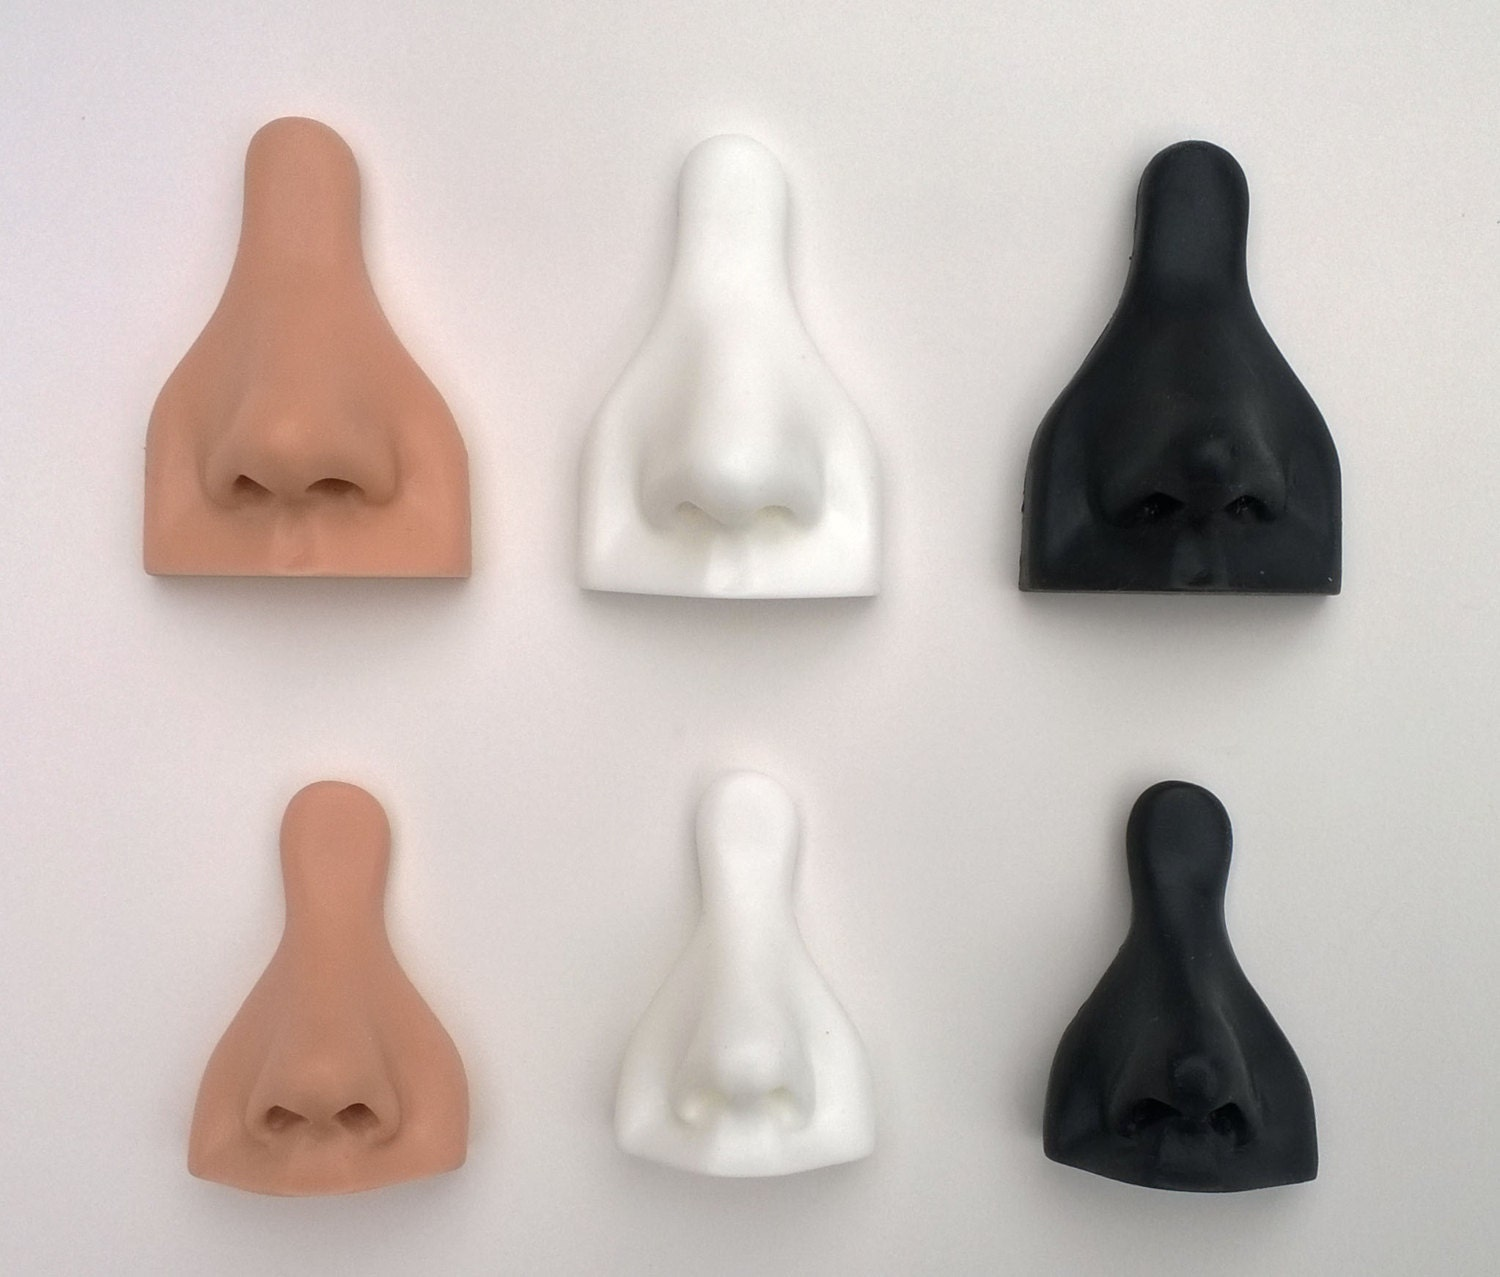 Soft Silicone Nose Jewelry Display Model